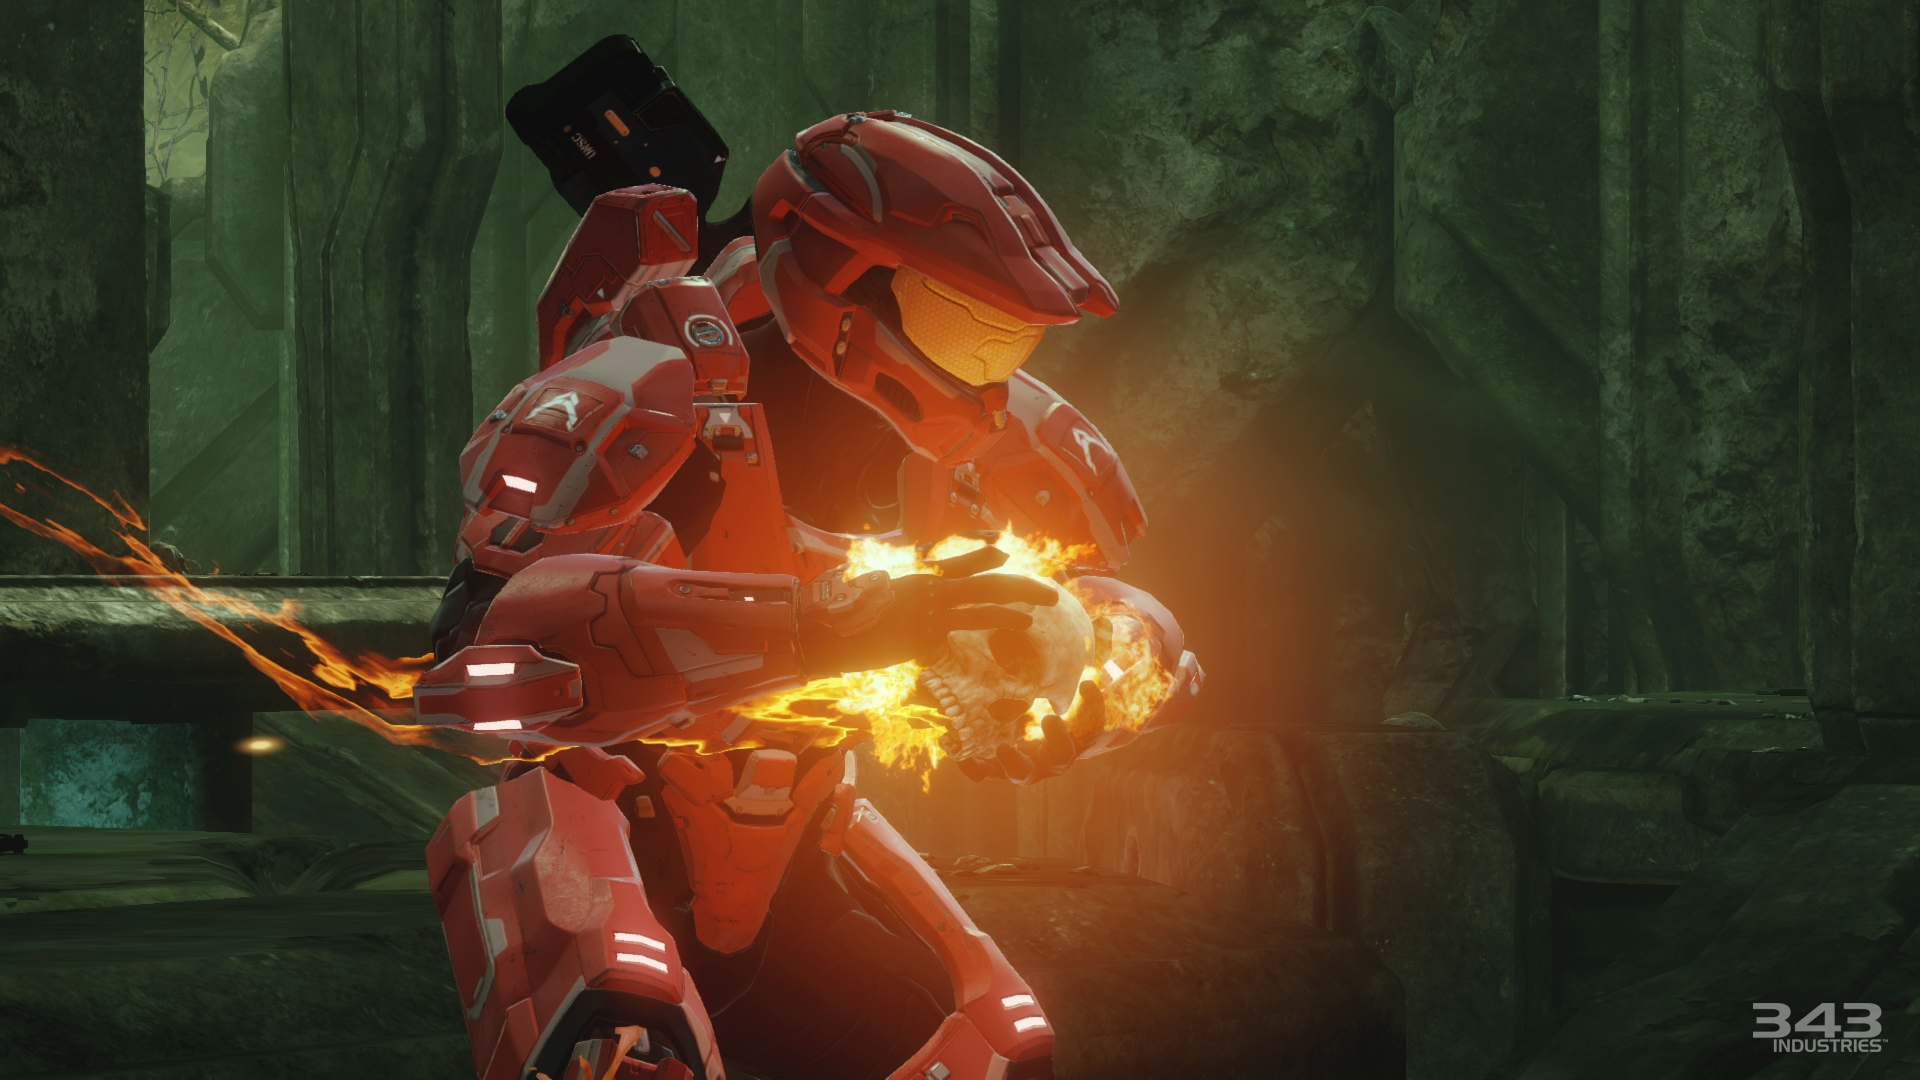 Скриншот из игры Halo: The Master Chief Collection под номером 9